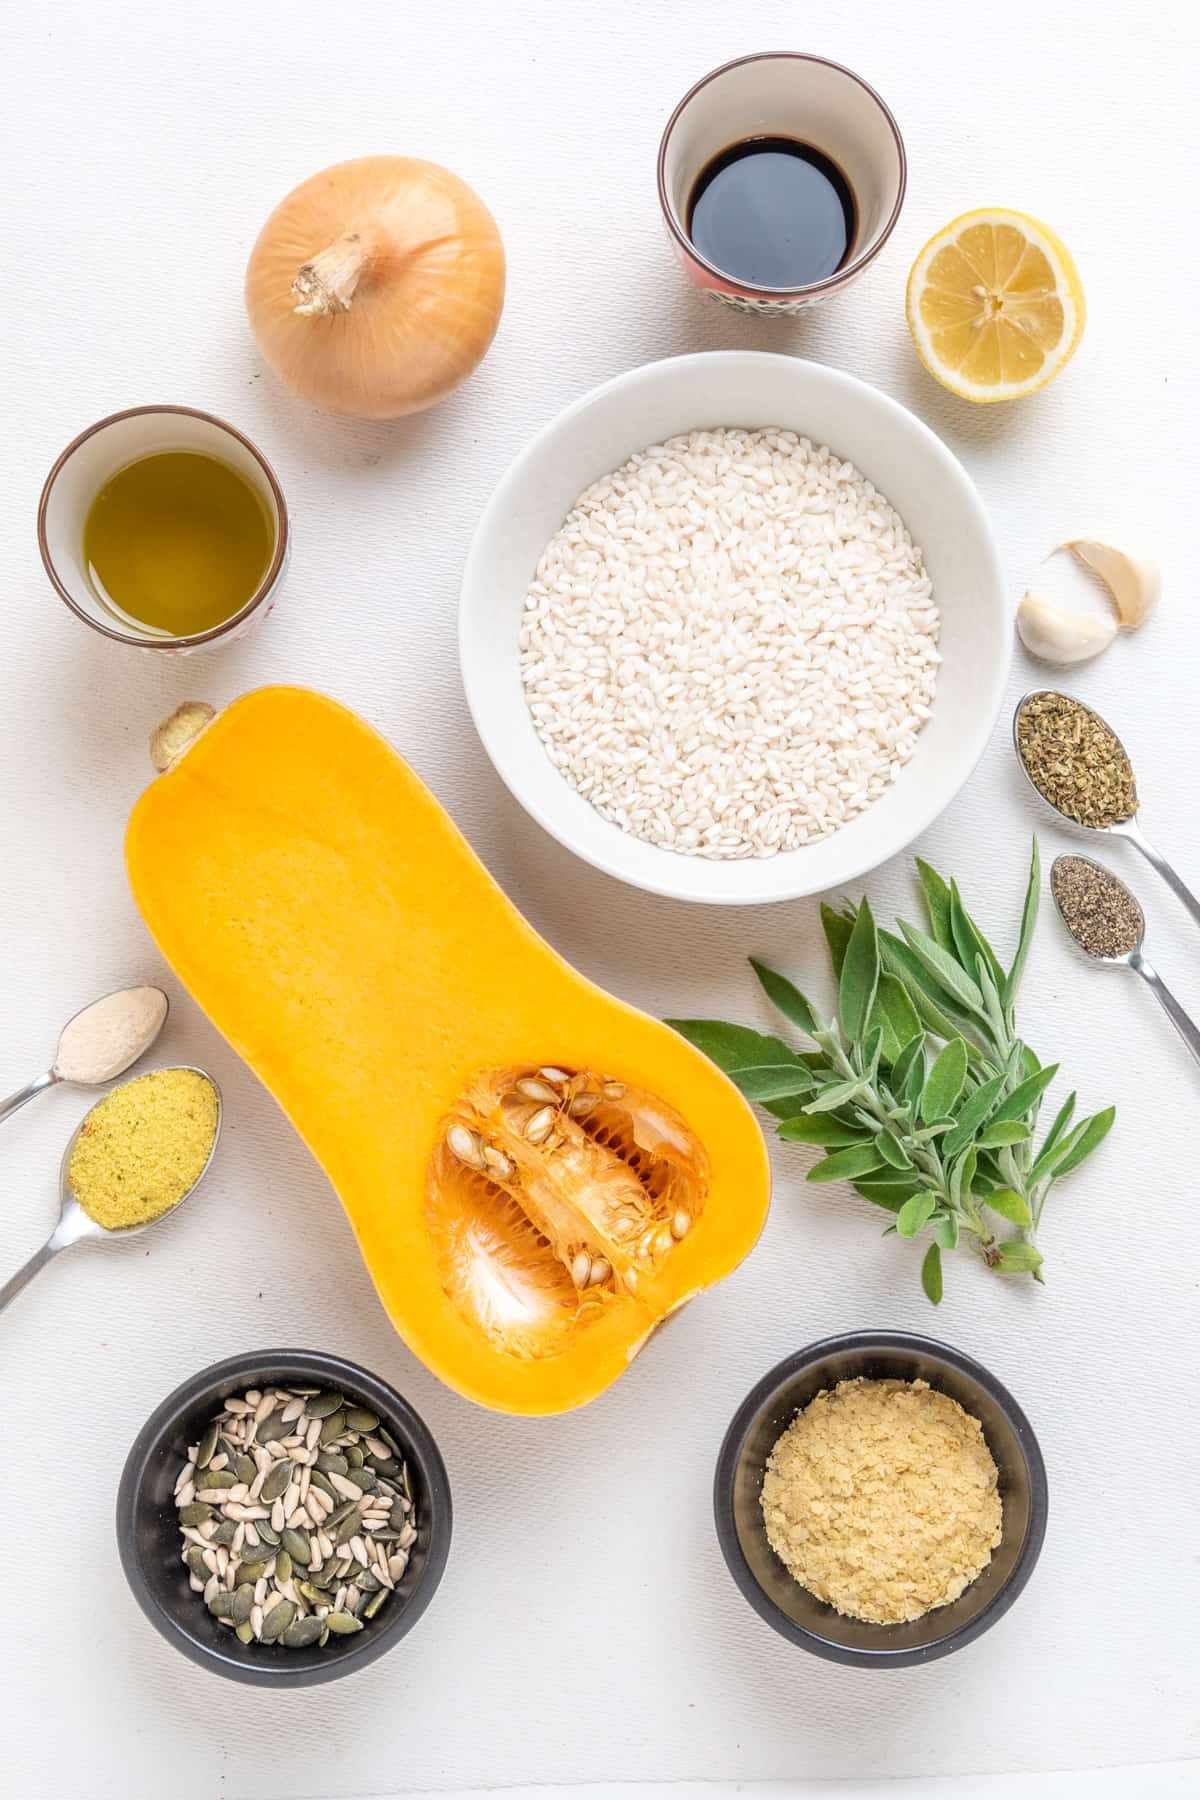 Ingredients for vegan butternut squash risotto on a white surface.